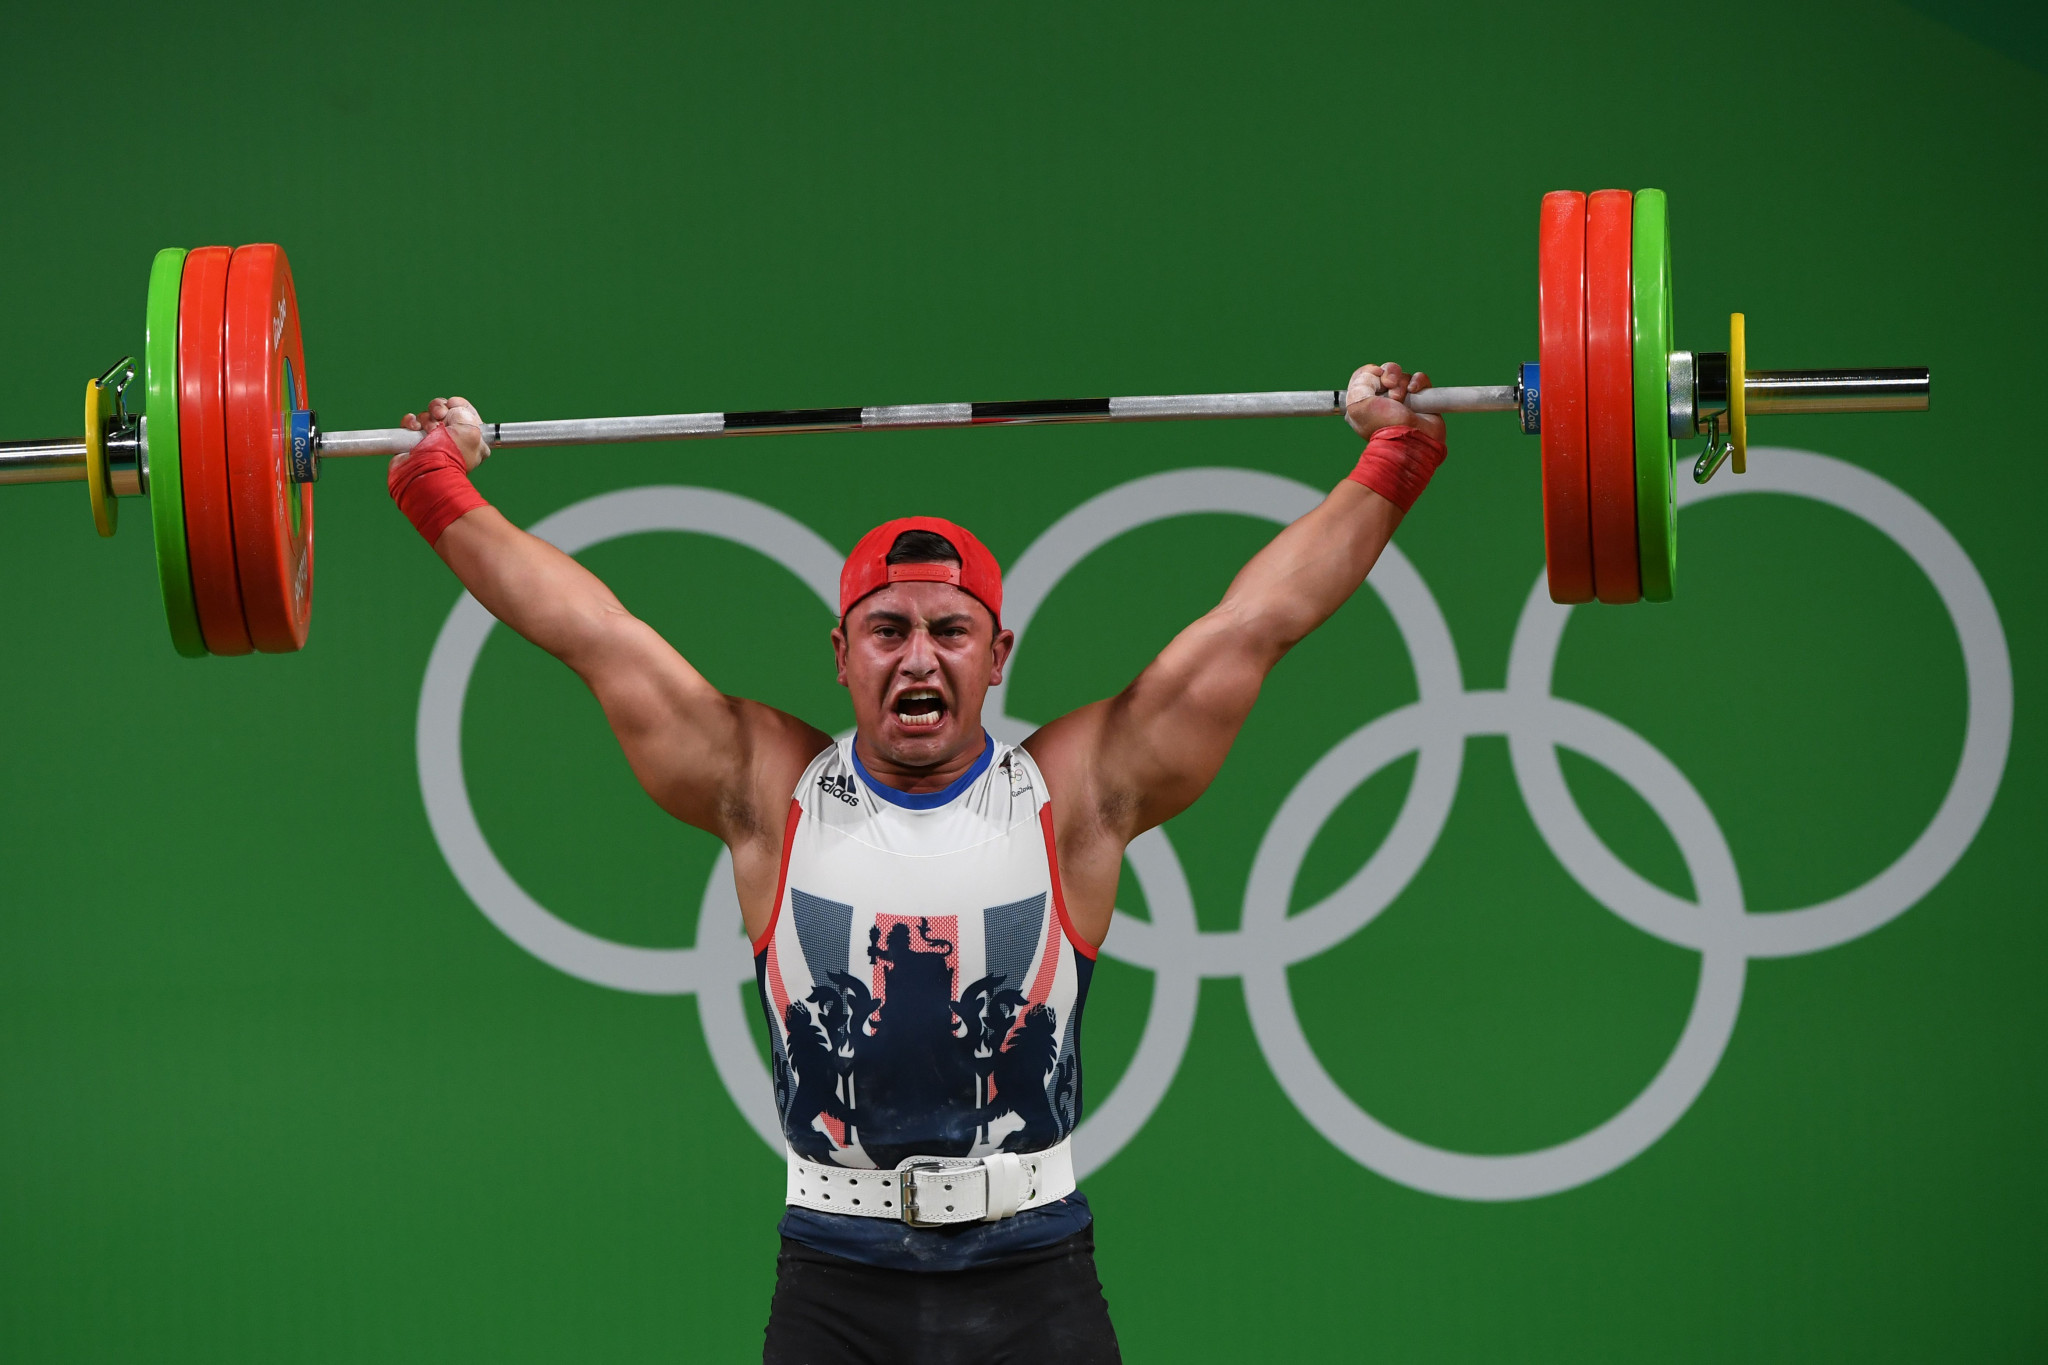 Kiwi weightlifters threatened with bans of up to two years if they attend training clinics run by British drugs cheat